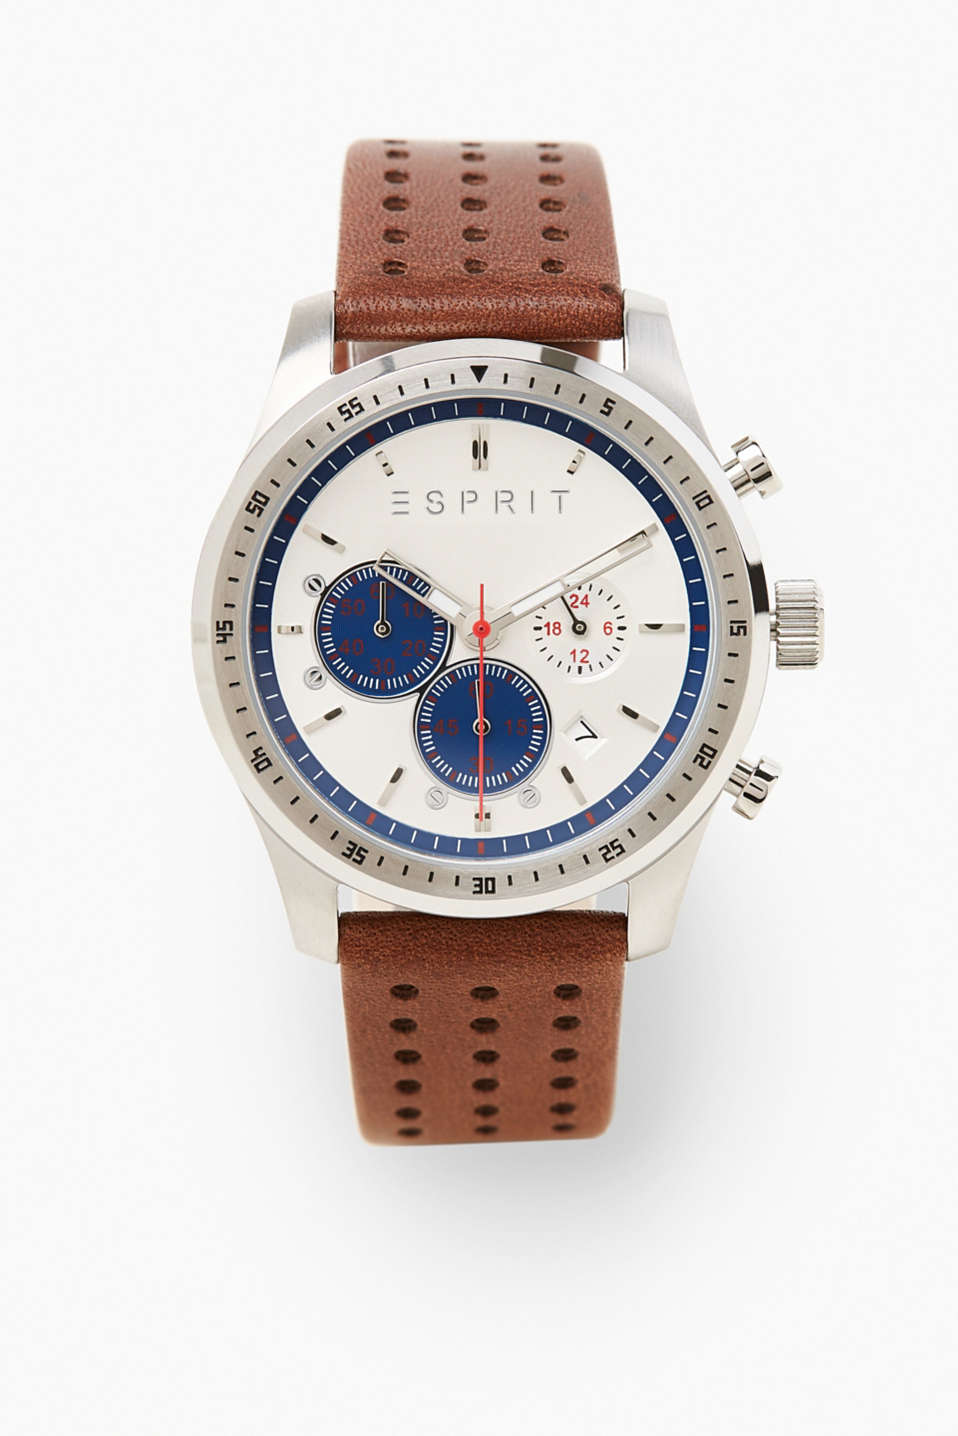 A distinctive chronograph for men! Numerous additional features make this watch a highlight piece.